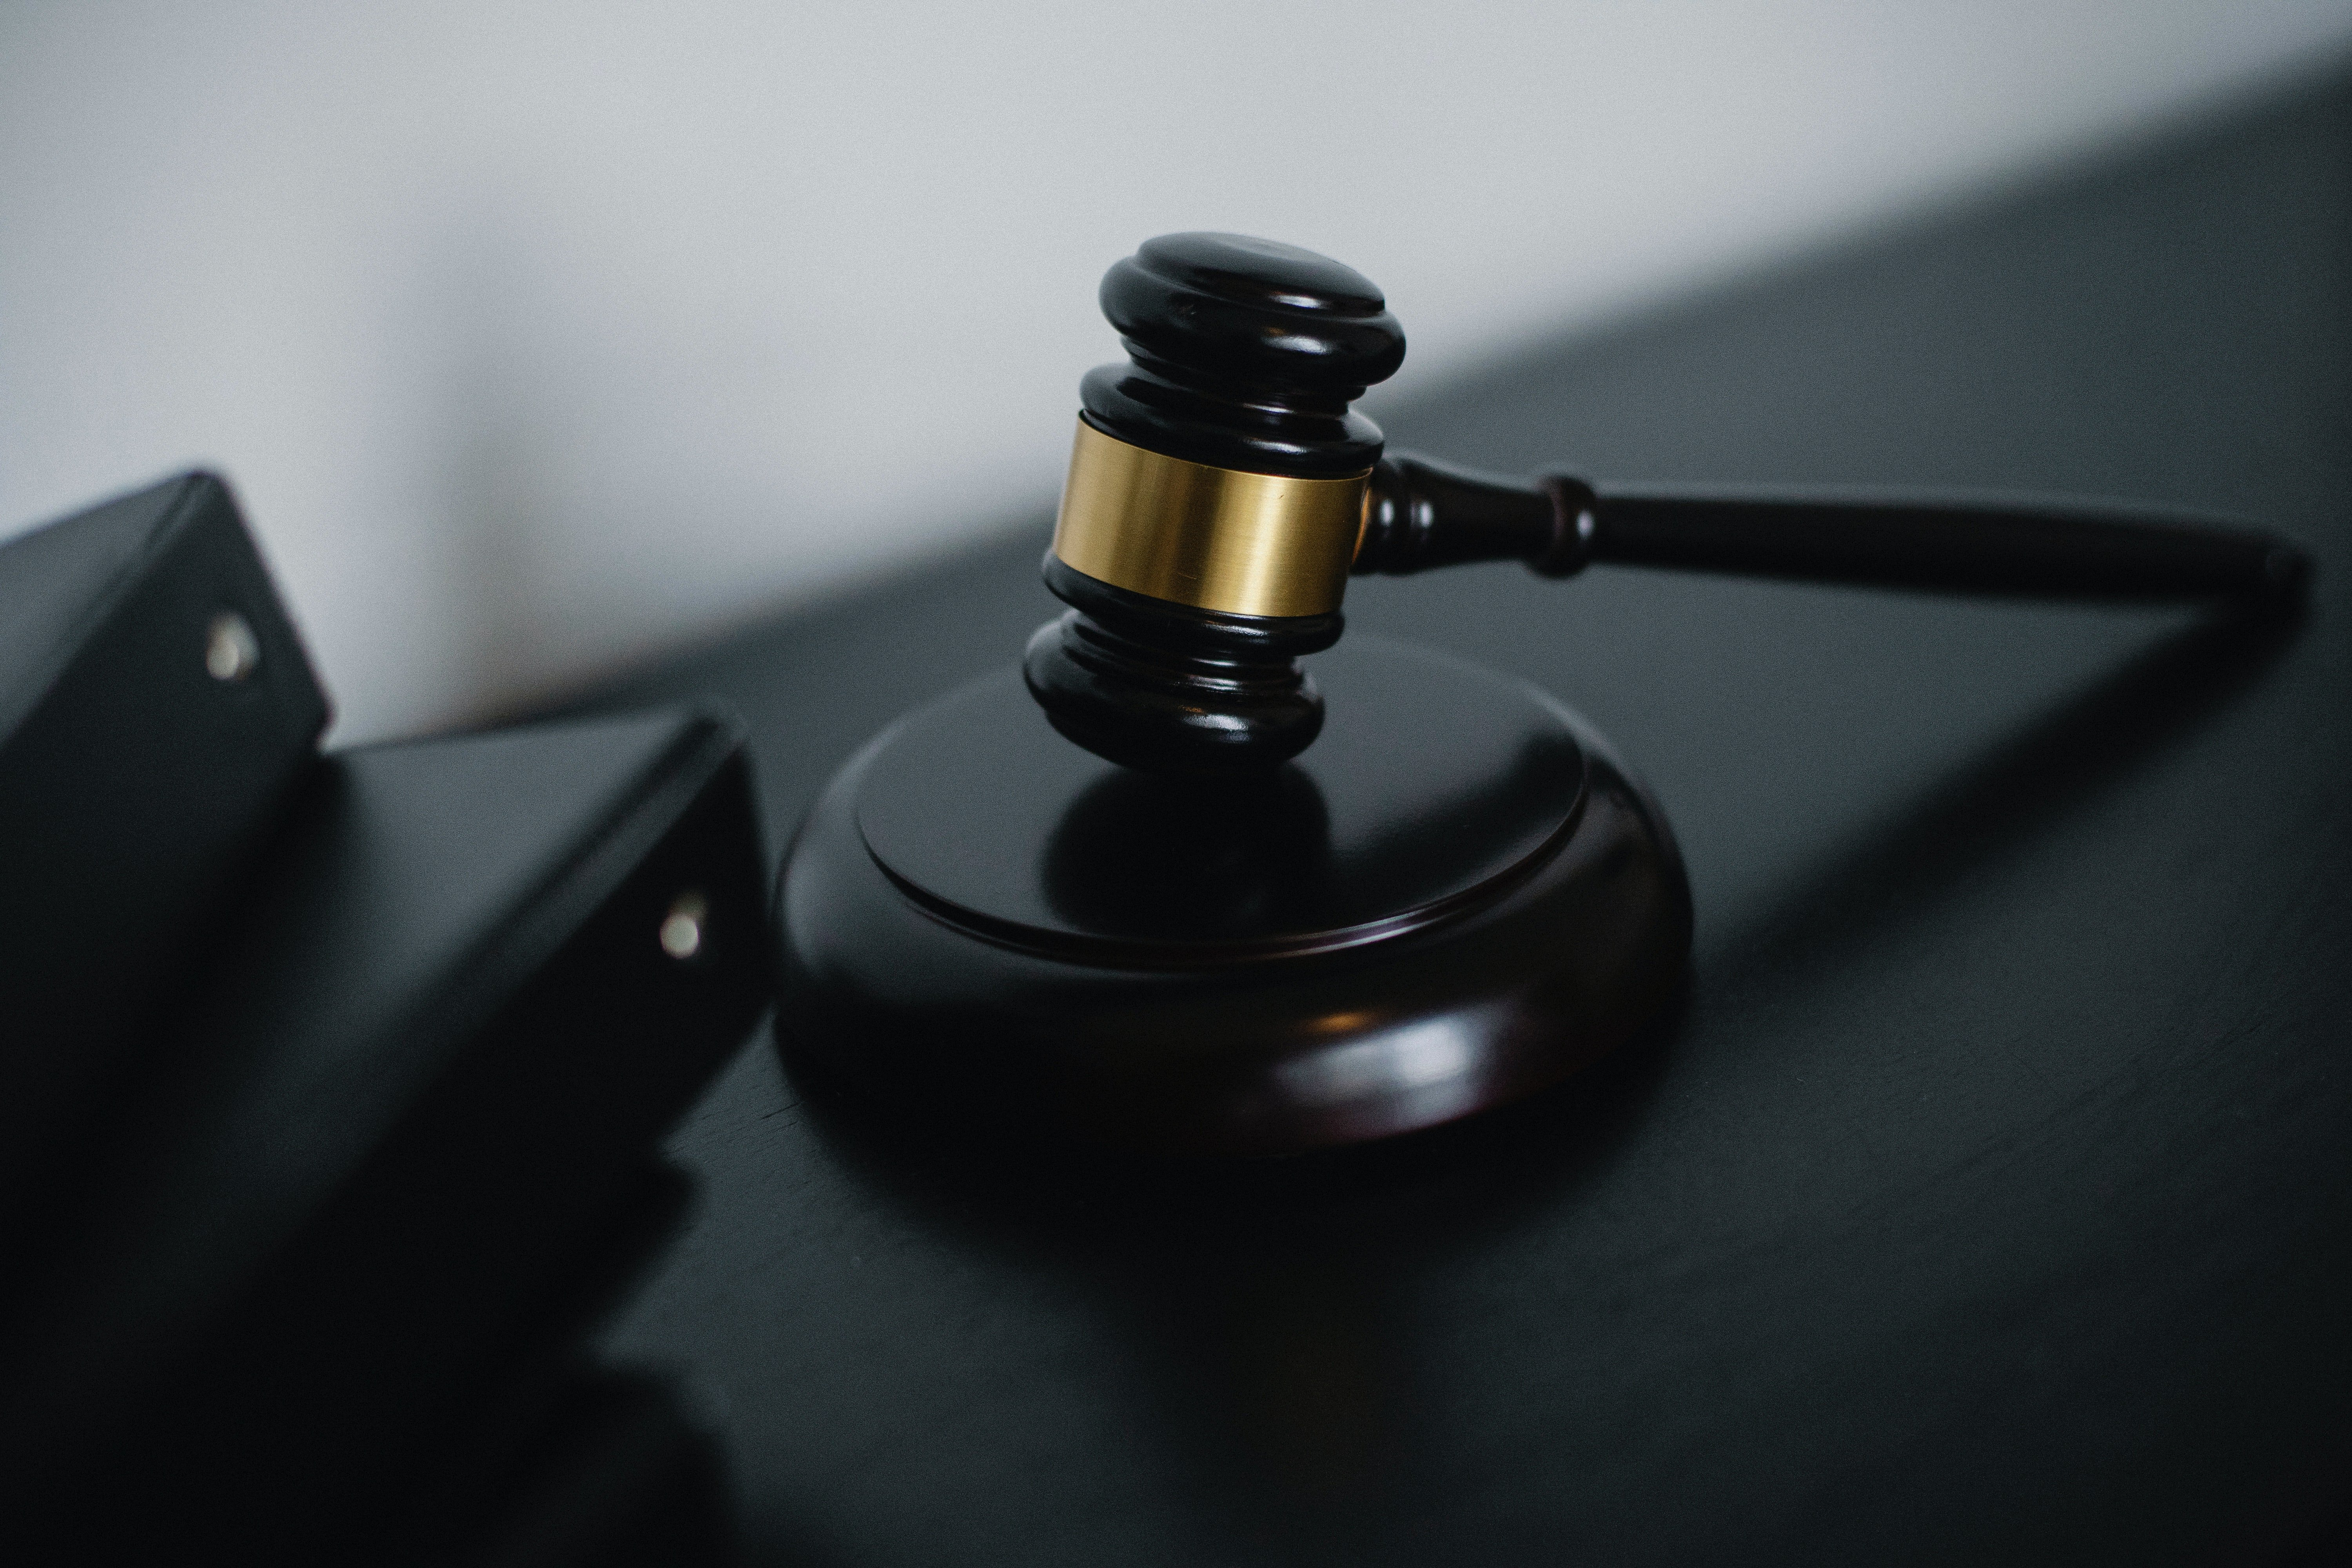 Pictured - A small judge gavel placed on the table near folders | Source: Pexels